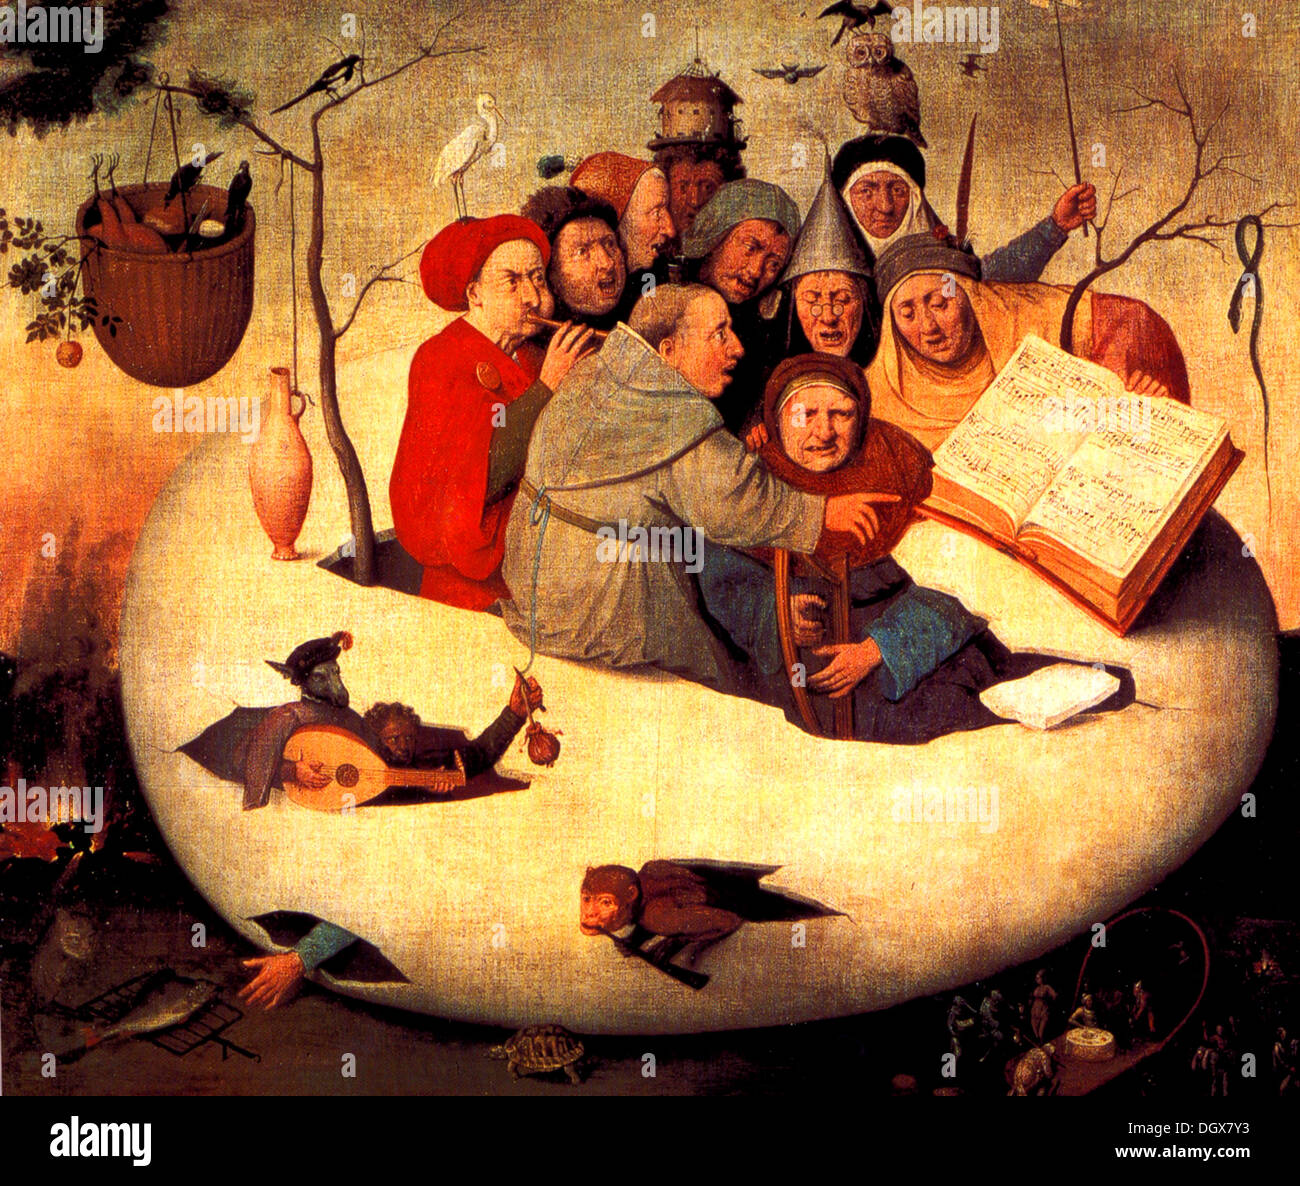 The Concert in the Egg - by Hieronymus Bosch, 1480 - Stock Image